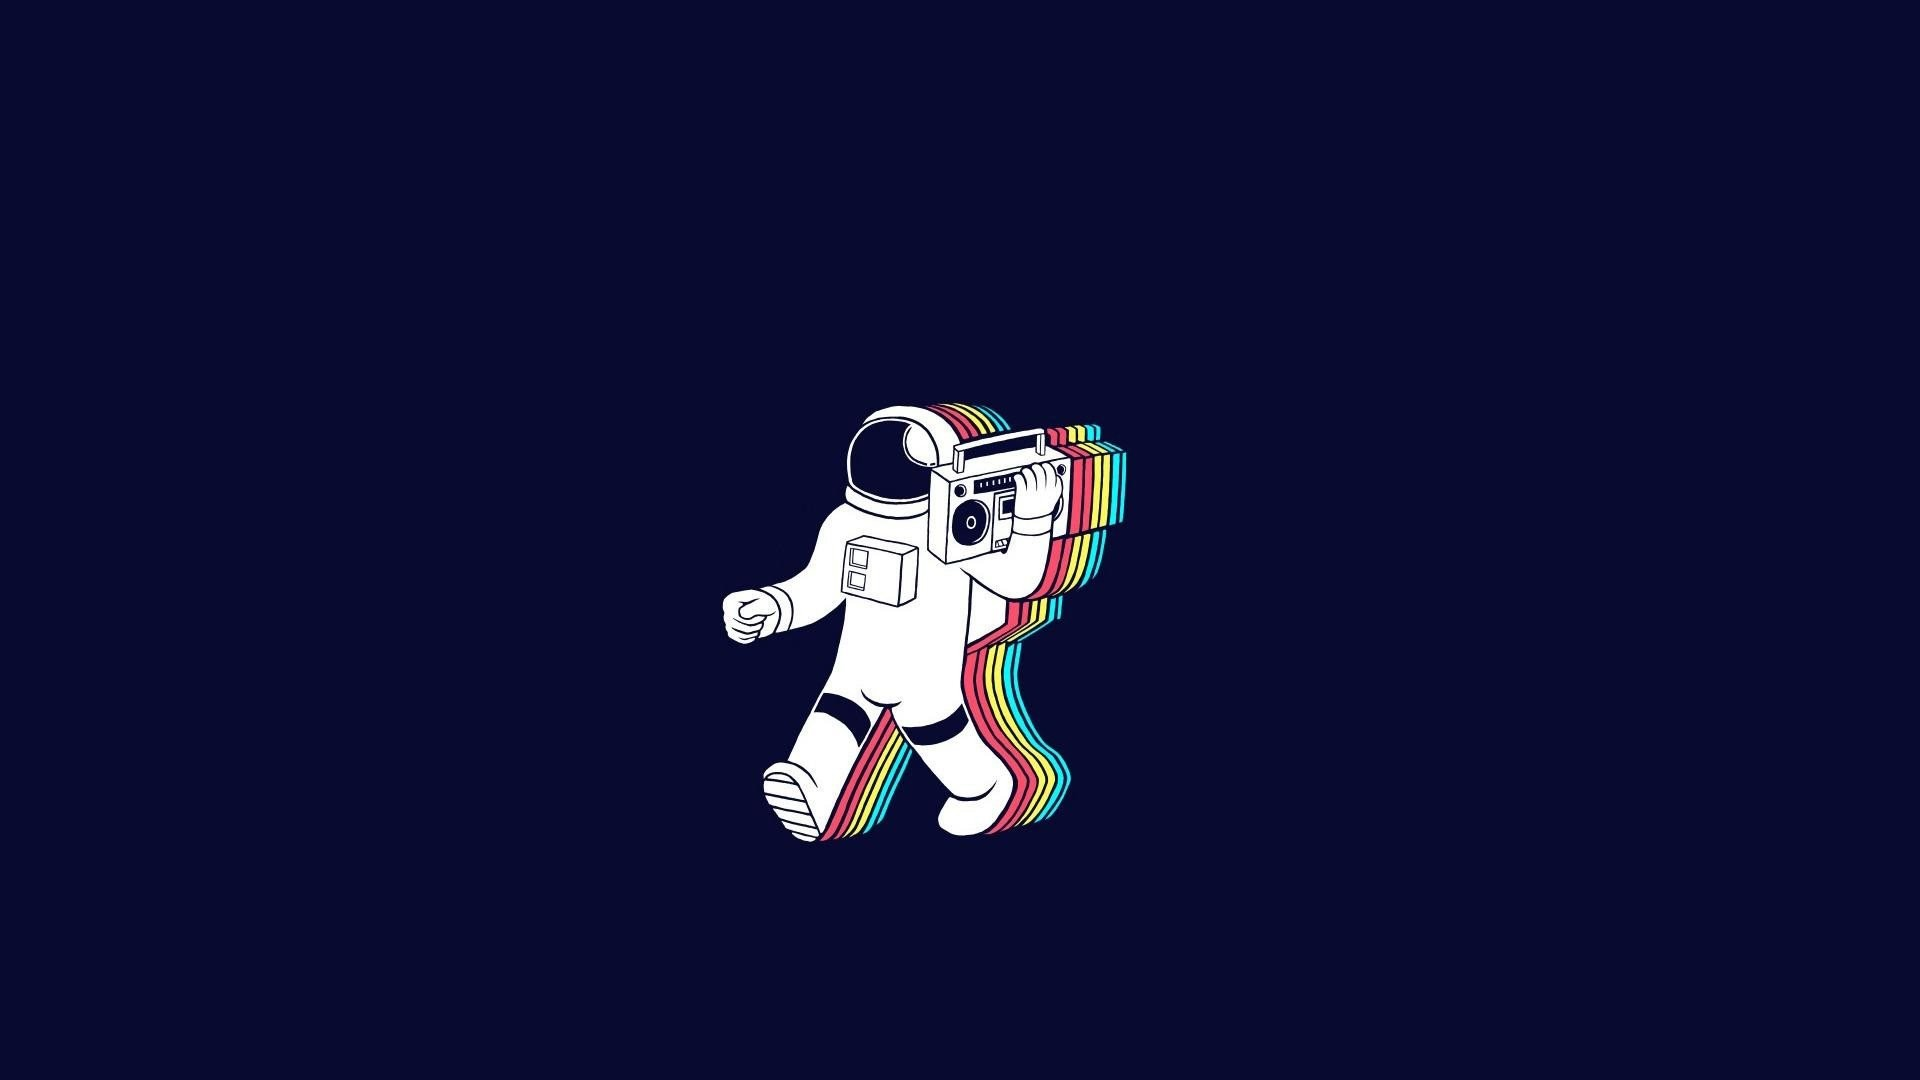 Res: 1920x1080, astronaut,funny images, hd artworks, space, wtf, music, mtv, peace,  backgrounds, nasa, scifi radio, view Wallpaper HD